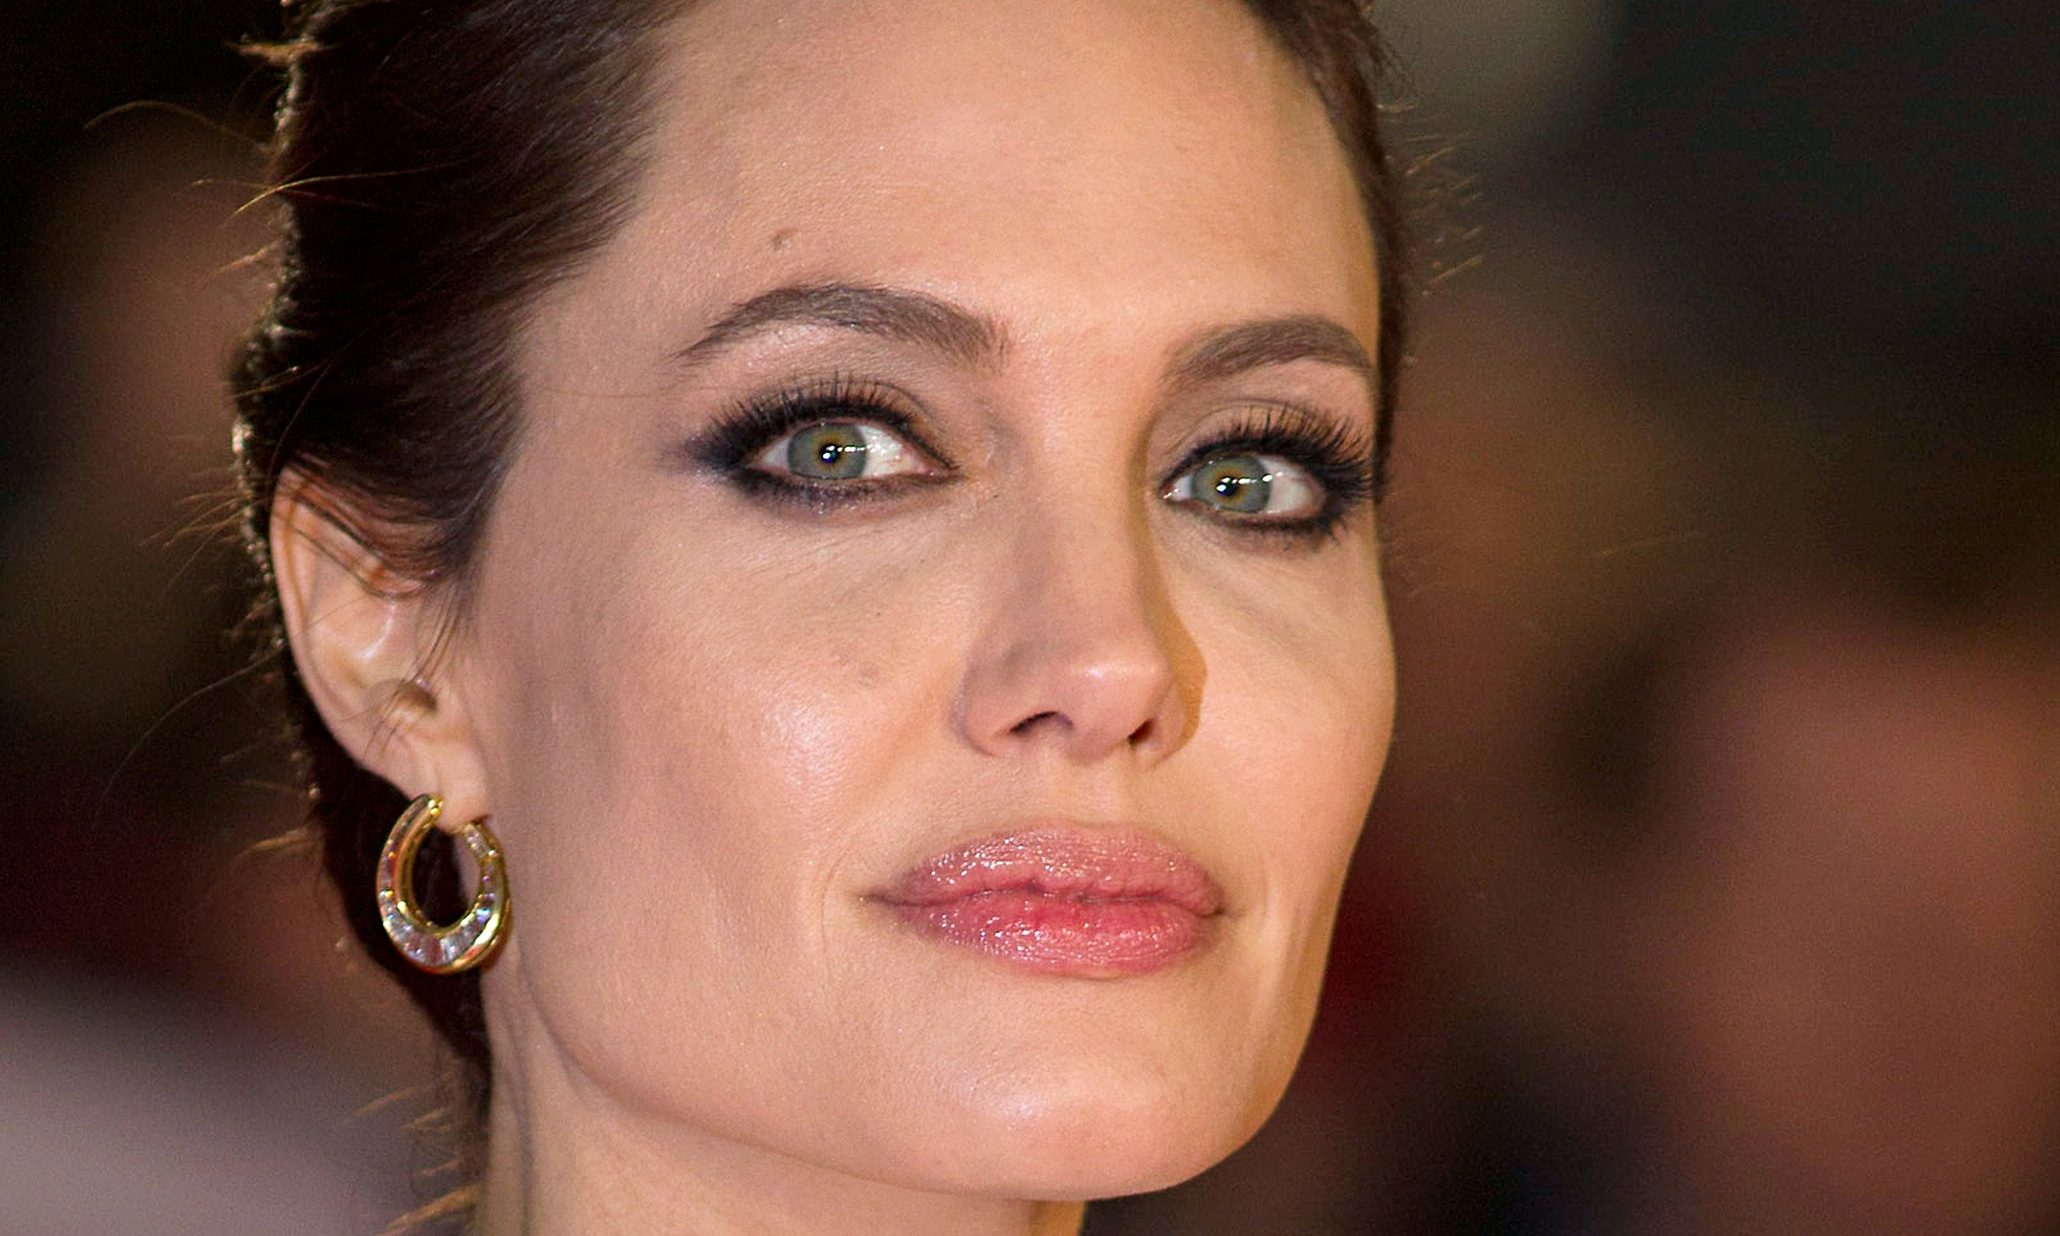 Jolie has the grace to says she feels deeply for the